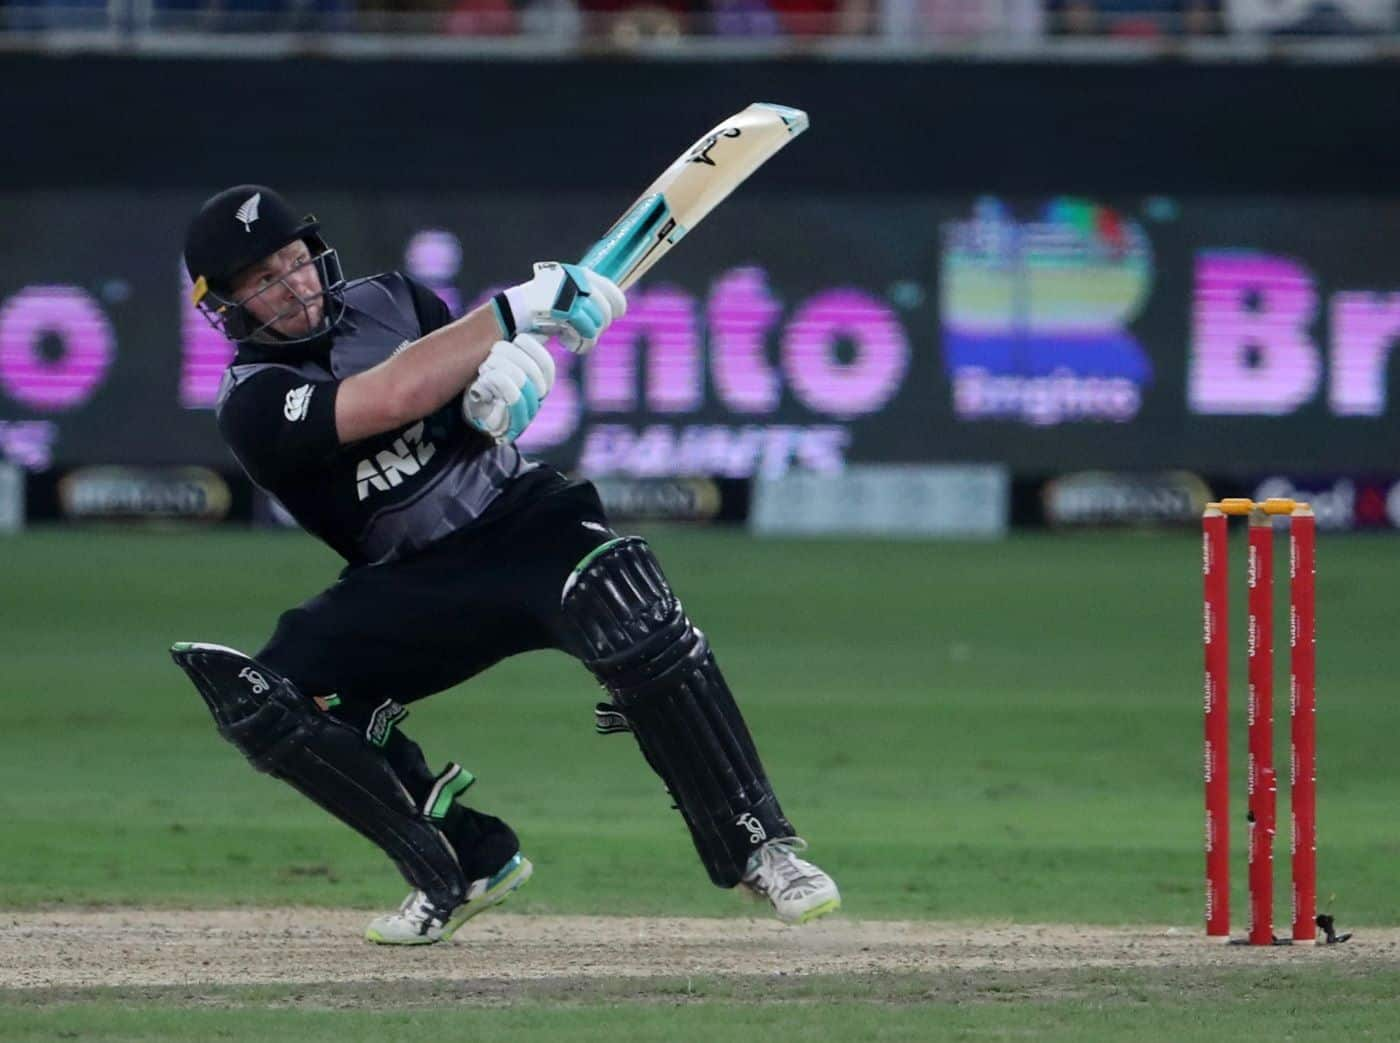 Ahead of ODI debut, Tim Seifert chases 2019 Cricket World Cup spot